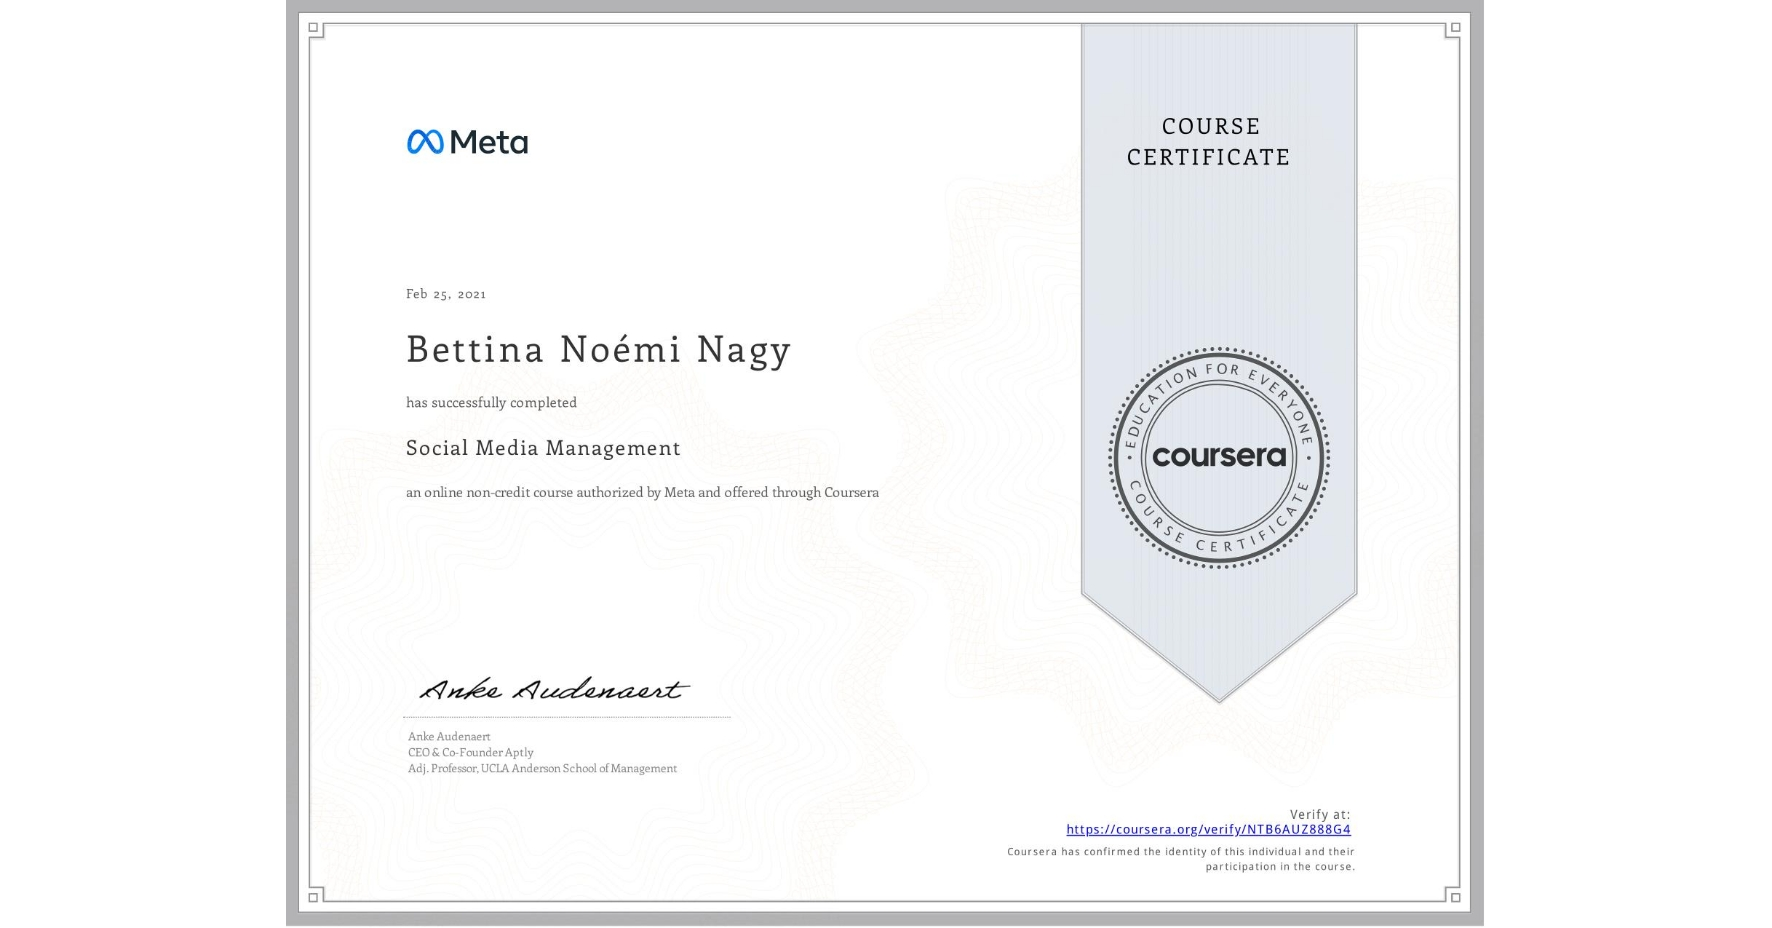 View certificate for Bettina Noémi Nagy, Social Media Management , an online non-credit course authorized by Facebook and offered through Coursera